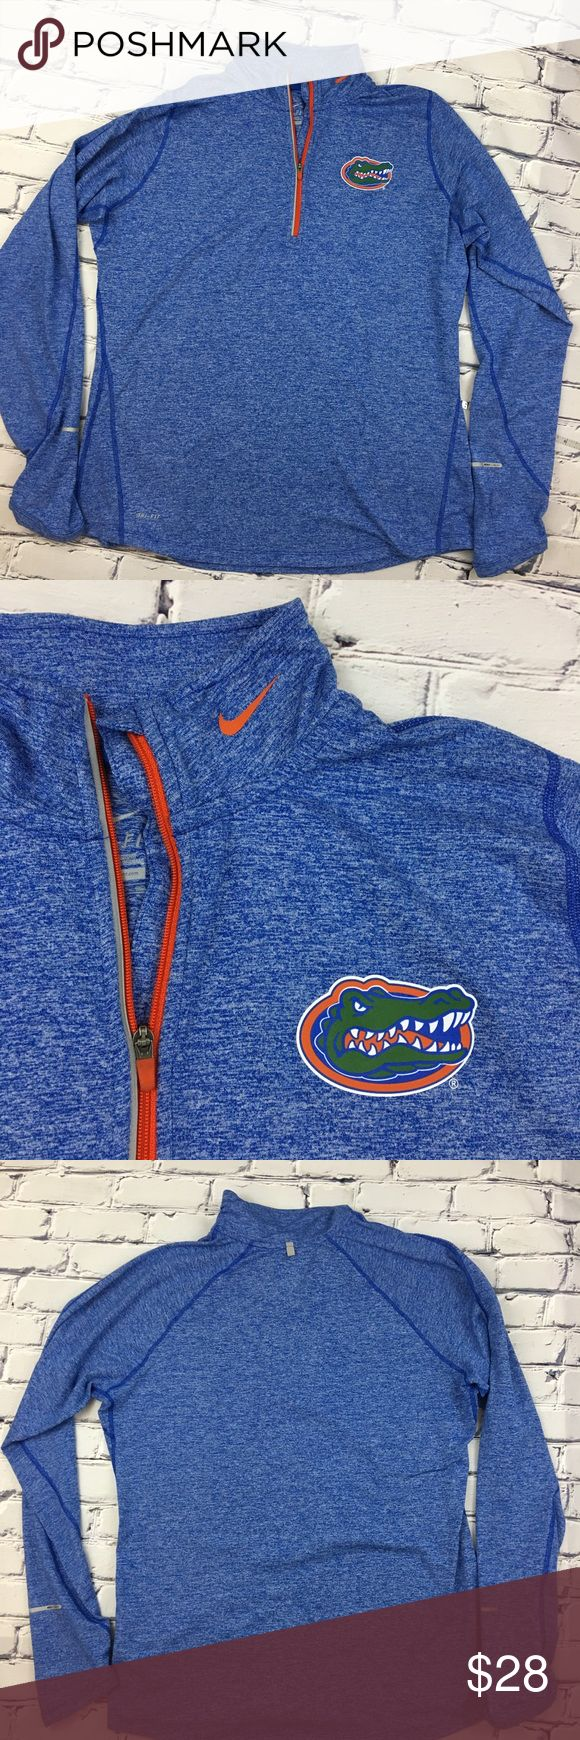 Nike Dri-Fit Long Sleeve Florida Gators Top Nike Dri-Fit Long Sleeve Florida Gators Top   Florida Gators colors in Blue with orange accents, half-zip athletic shirt with raised collar and thumb holes on sleeves  🌴 Size: XL Nike Tops